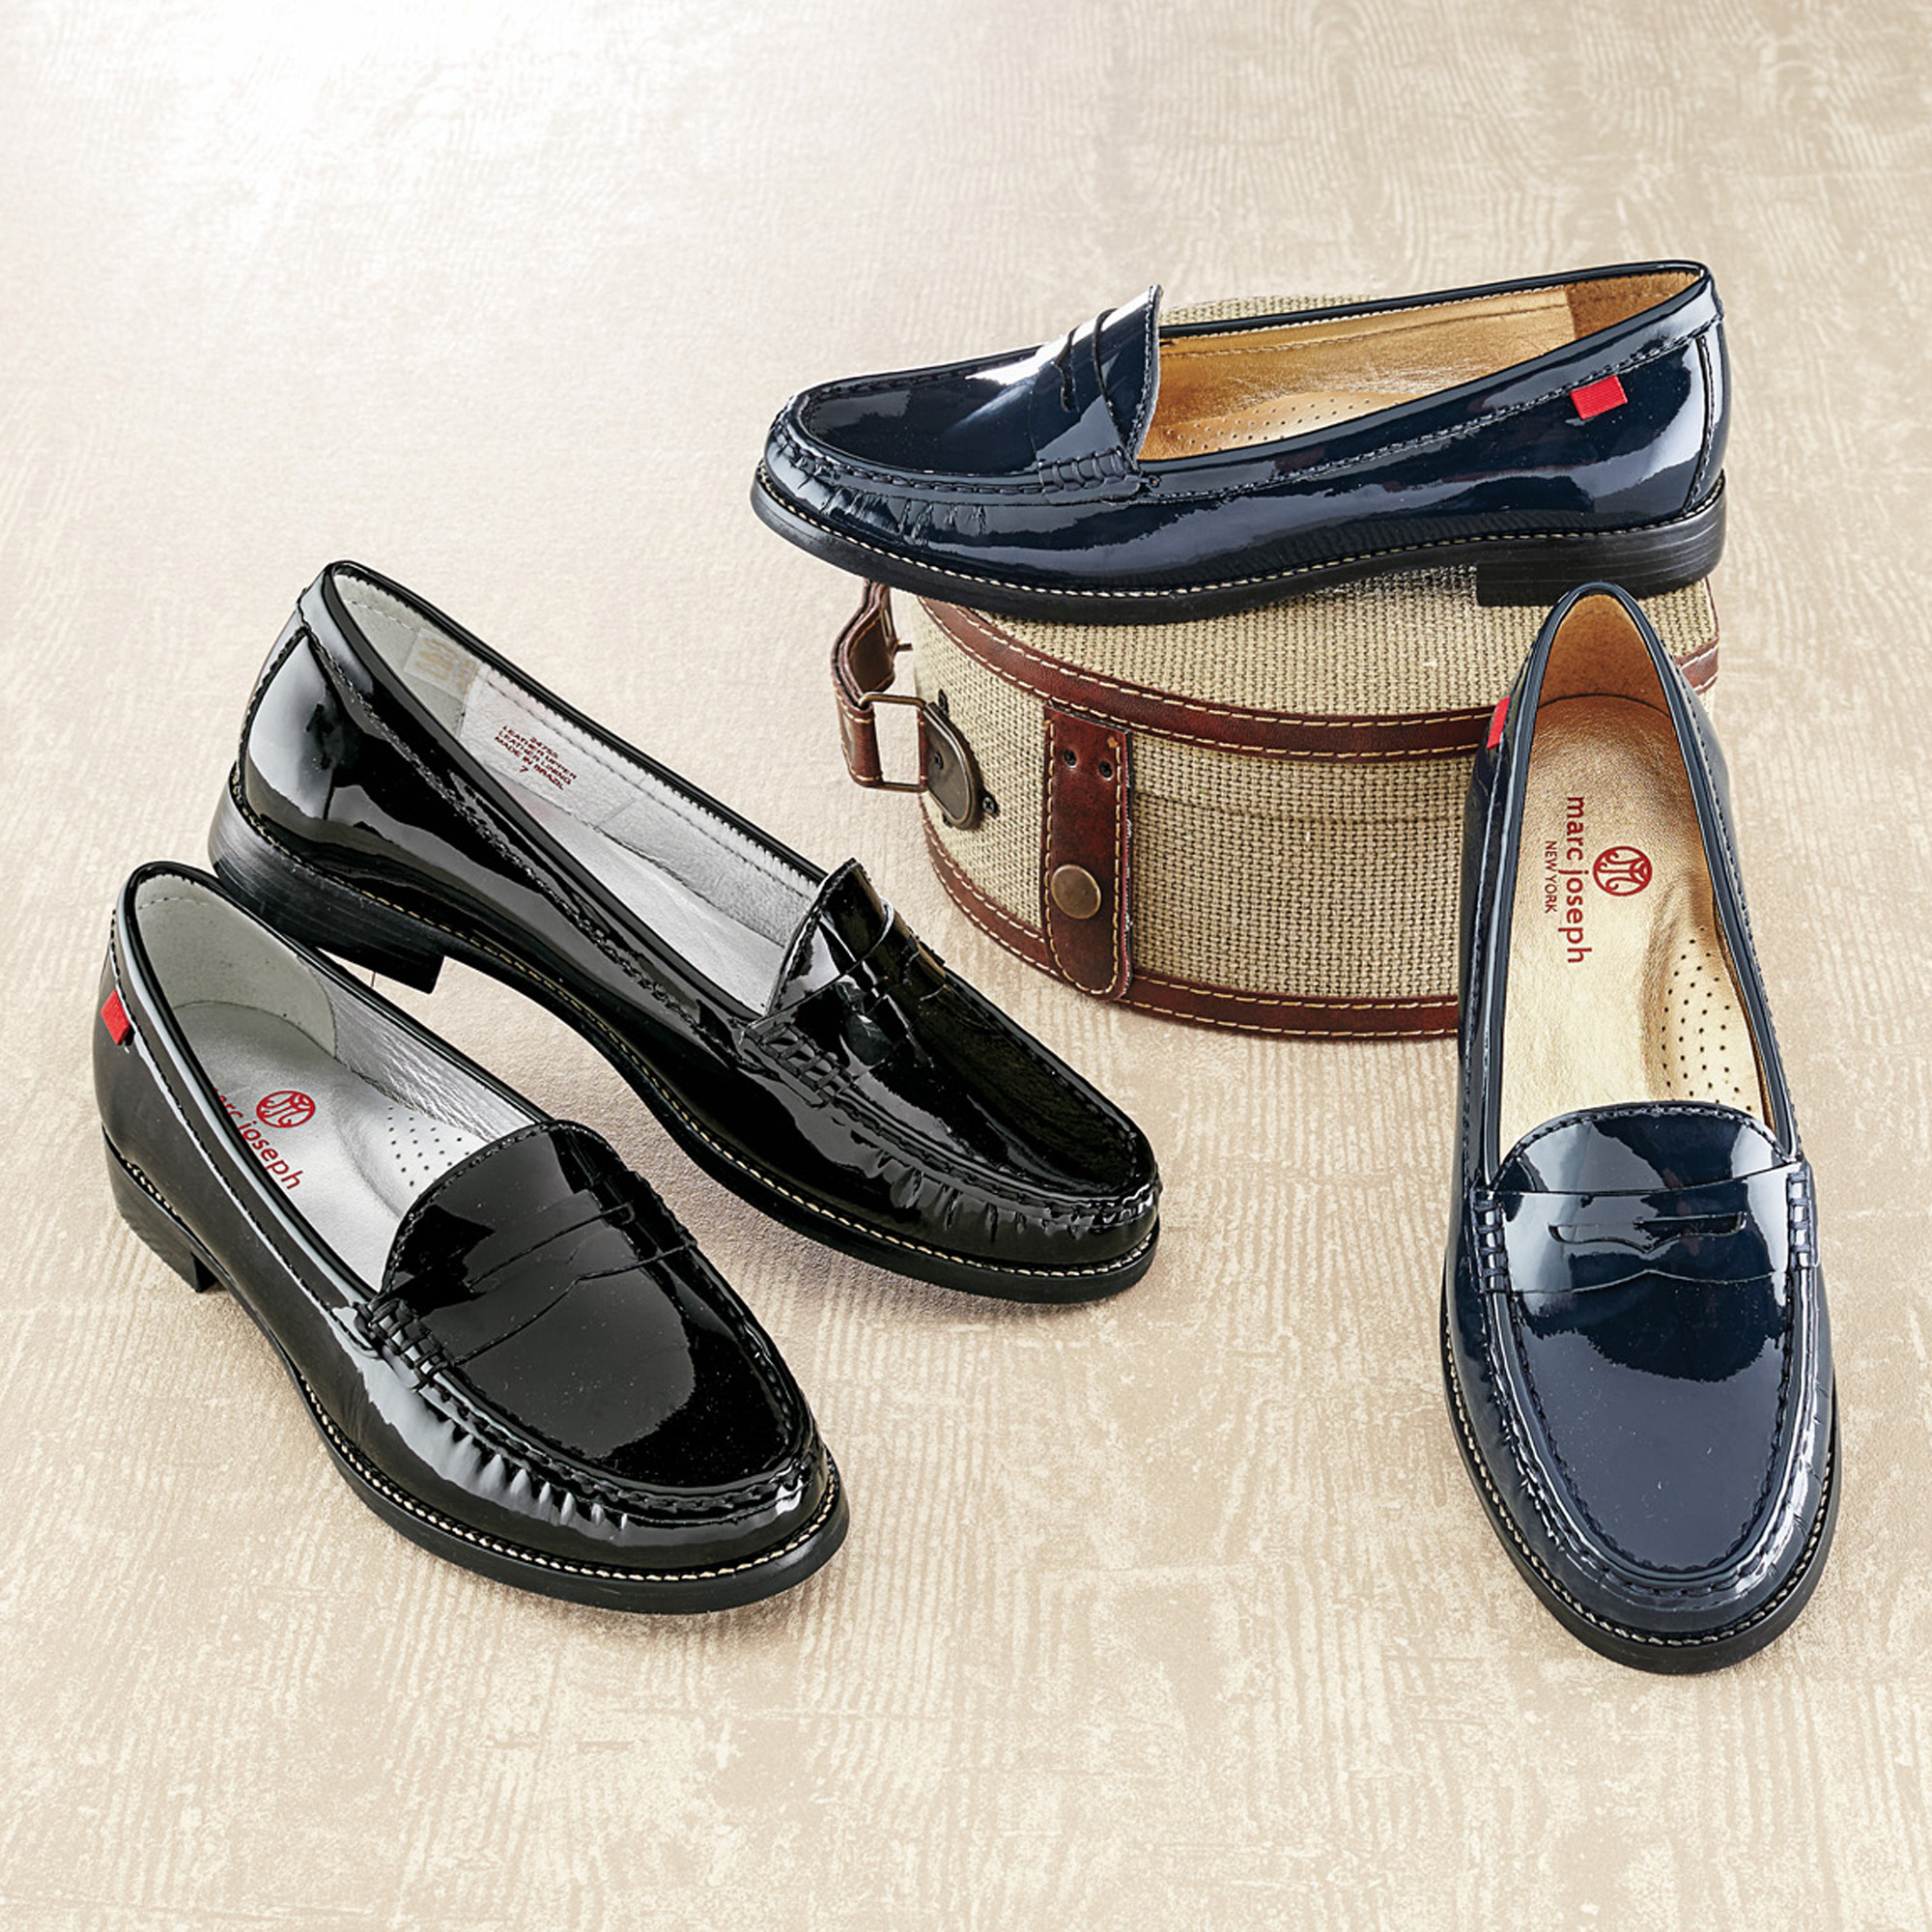 Marc Joseph Patent Loafers